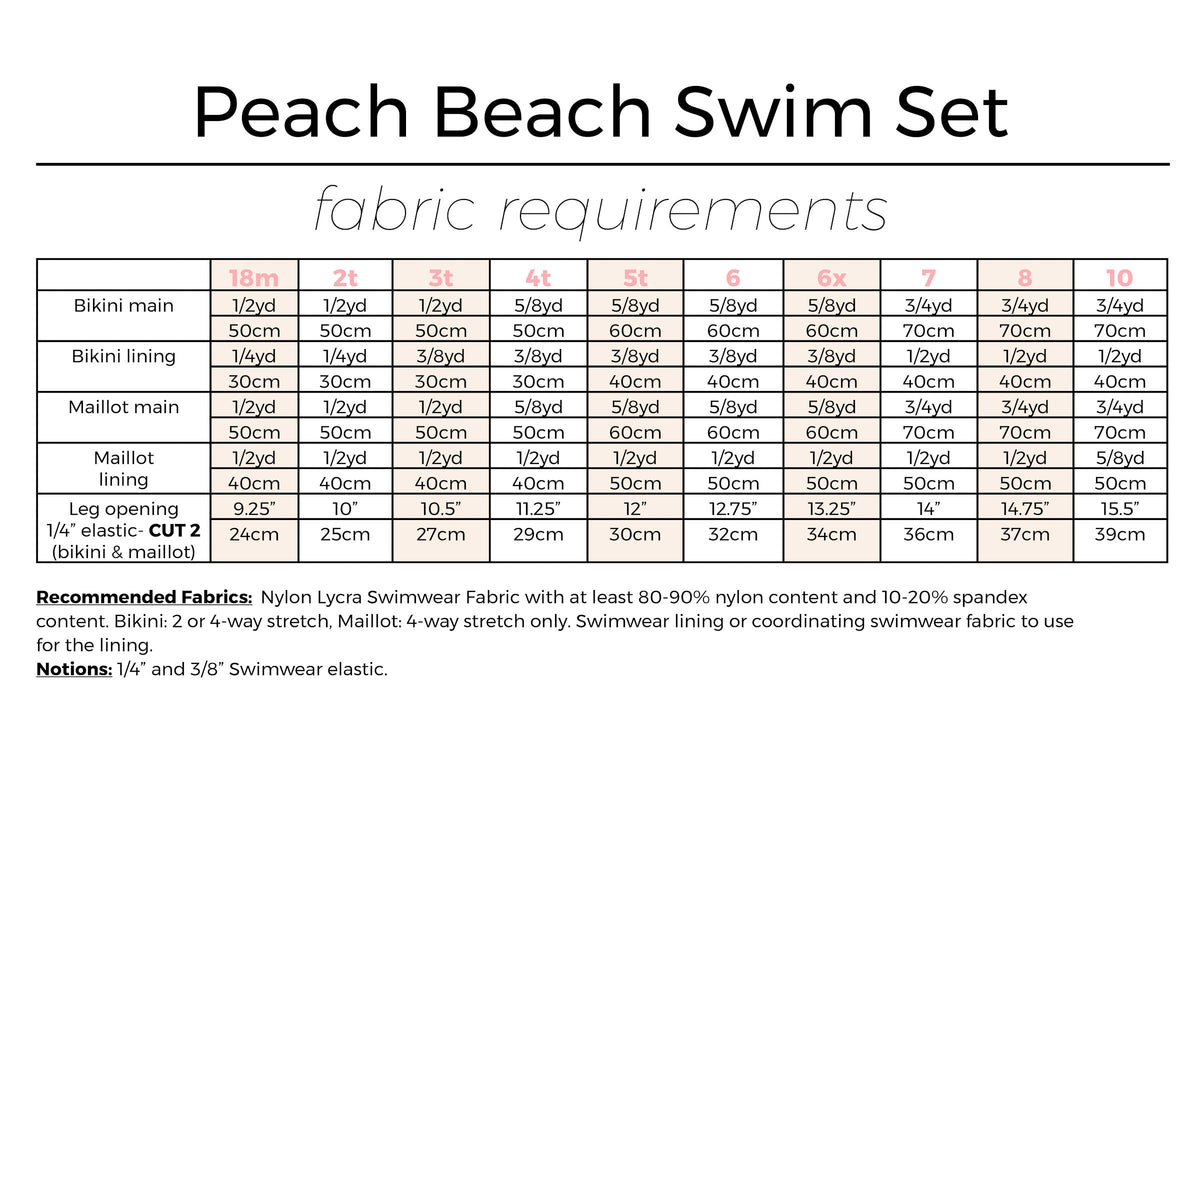 Peach Beach Swim Set